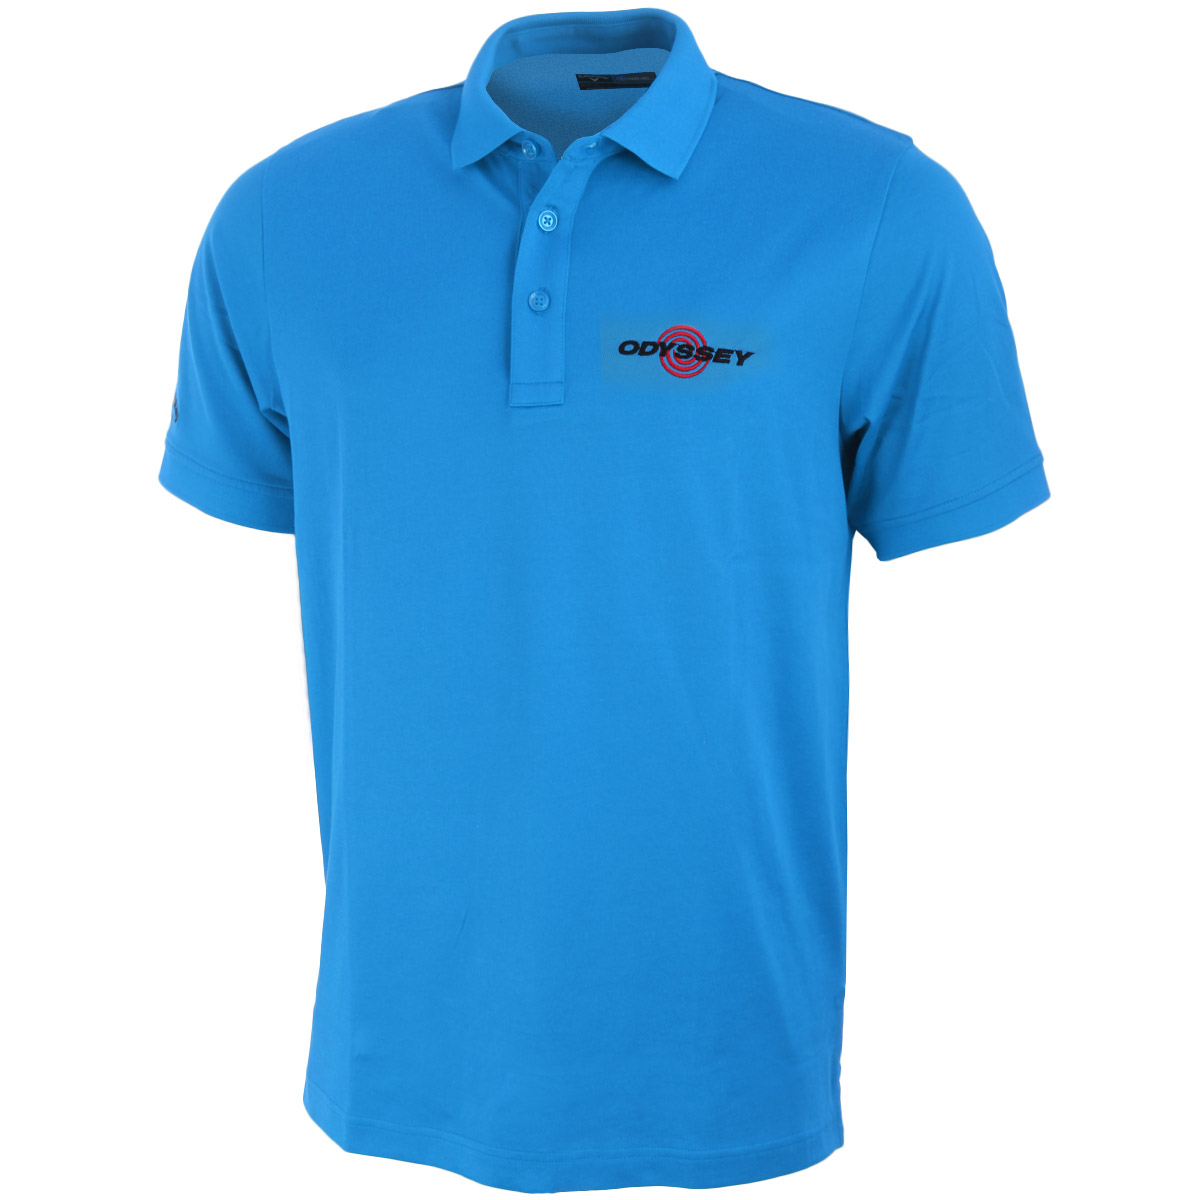 Callaway golf mens solid cotton odyssey tour logo polo for Cotton polo shirts with logo